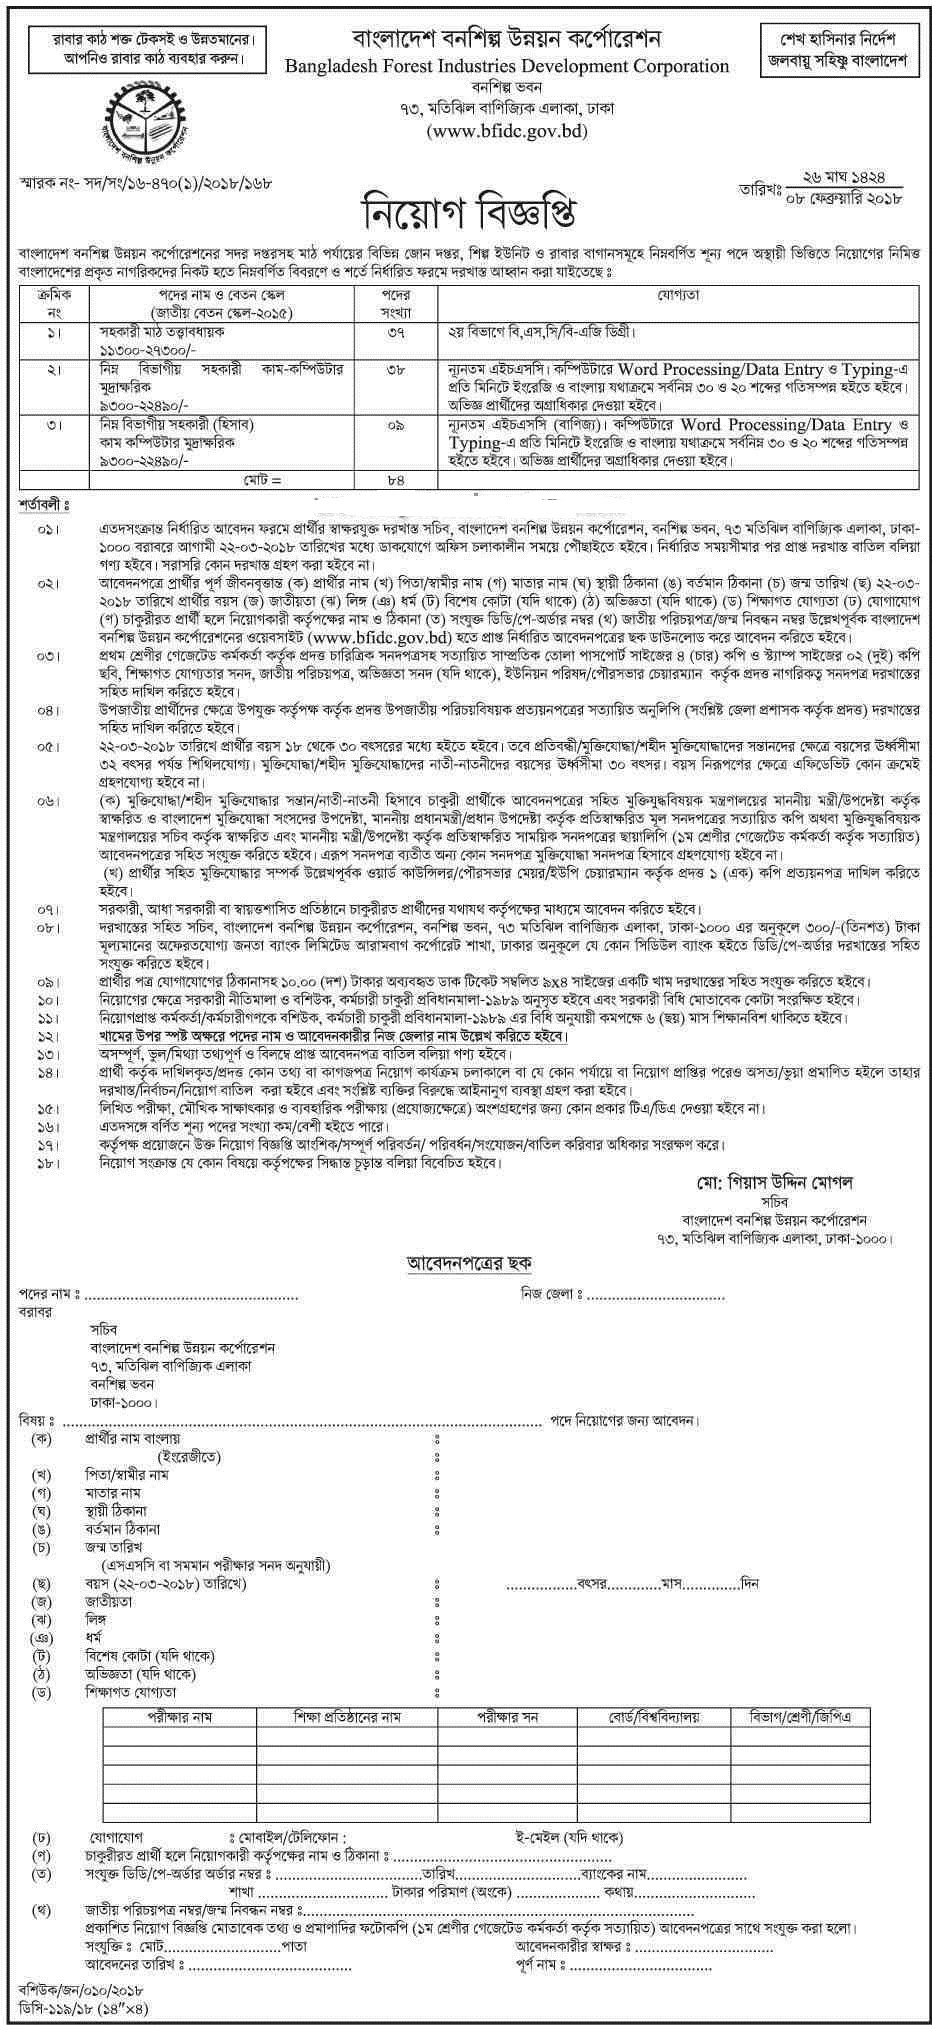 Bangladesh Forest Industries Development Corporation BFIDC Job circular